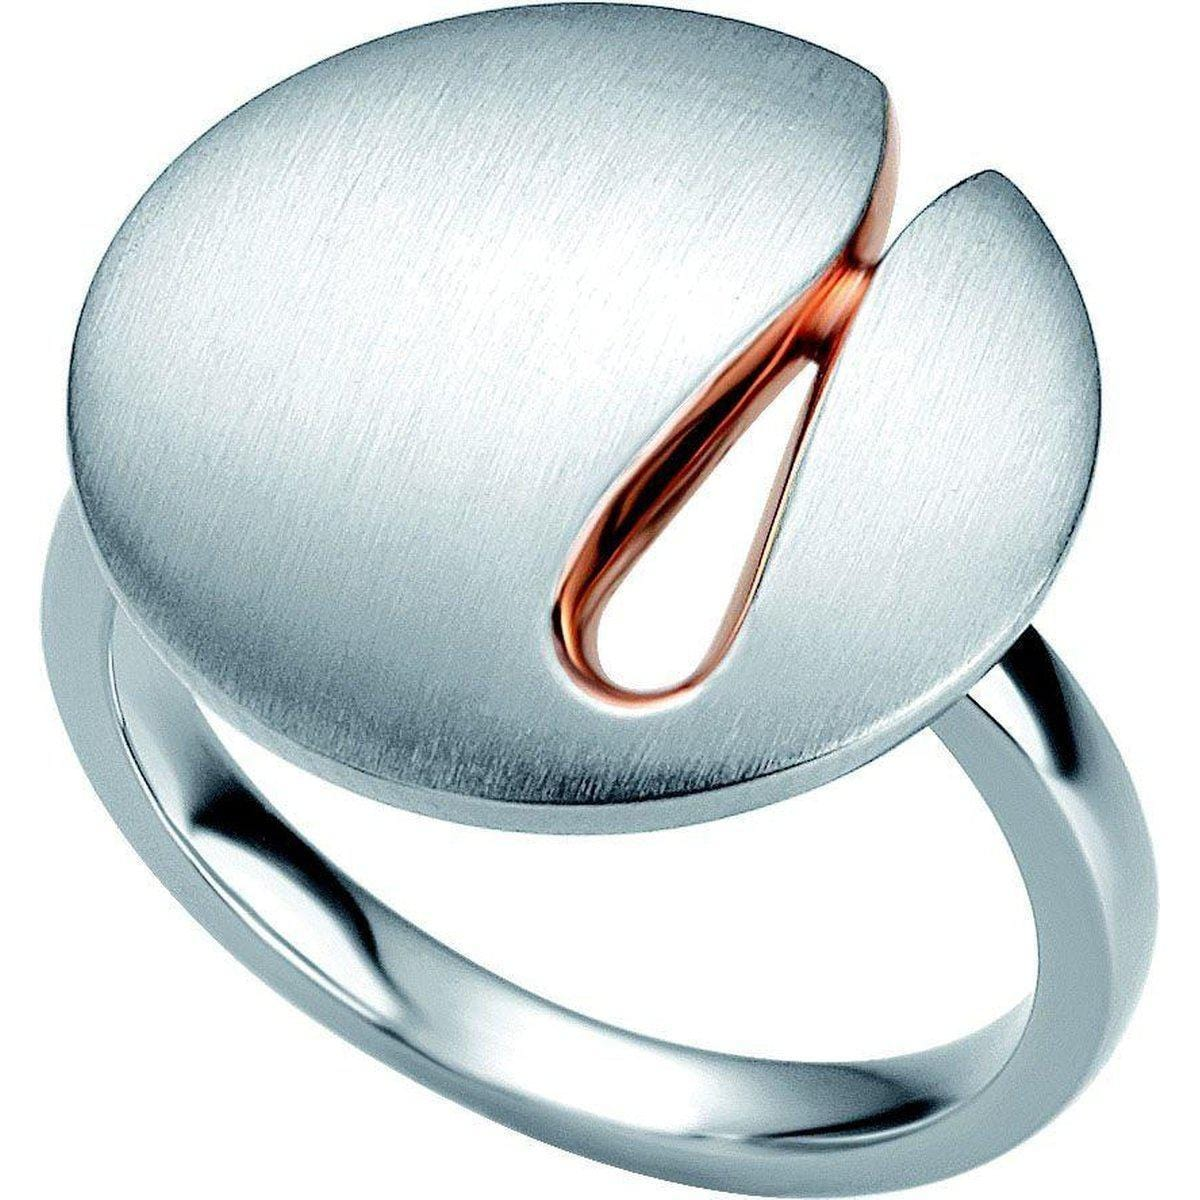 Rose Gold & Rhodium Plated Sterling Silver Ring - 44/01361-Breuning-Renee Taylor Gallery